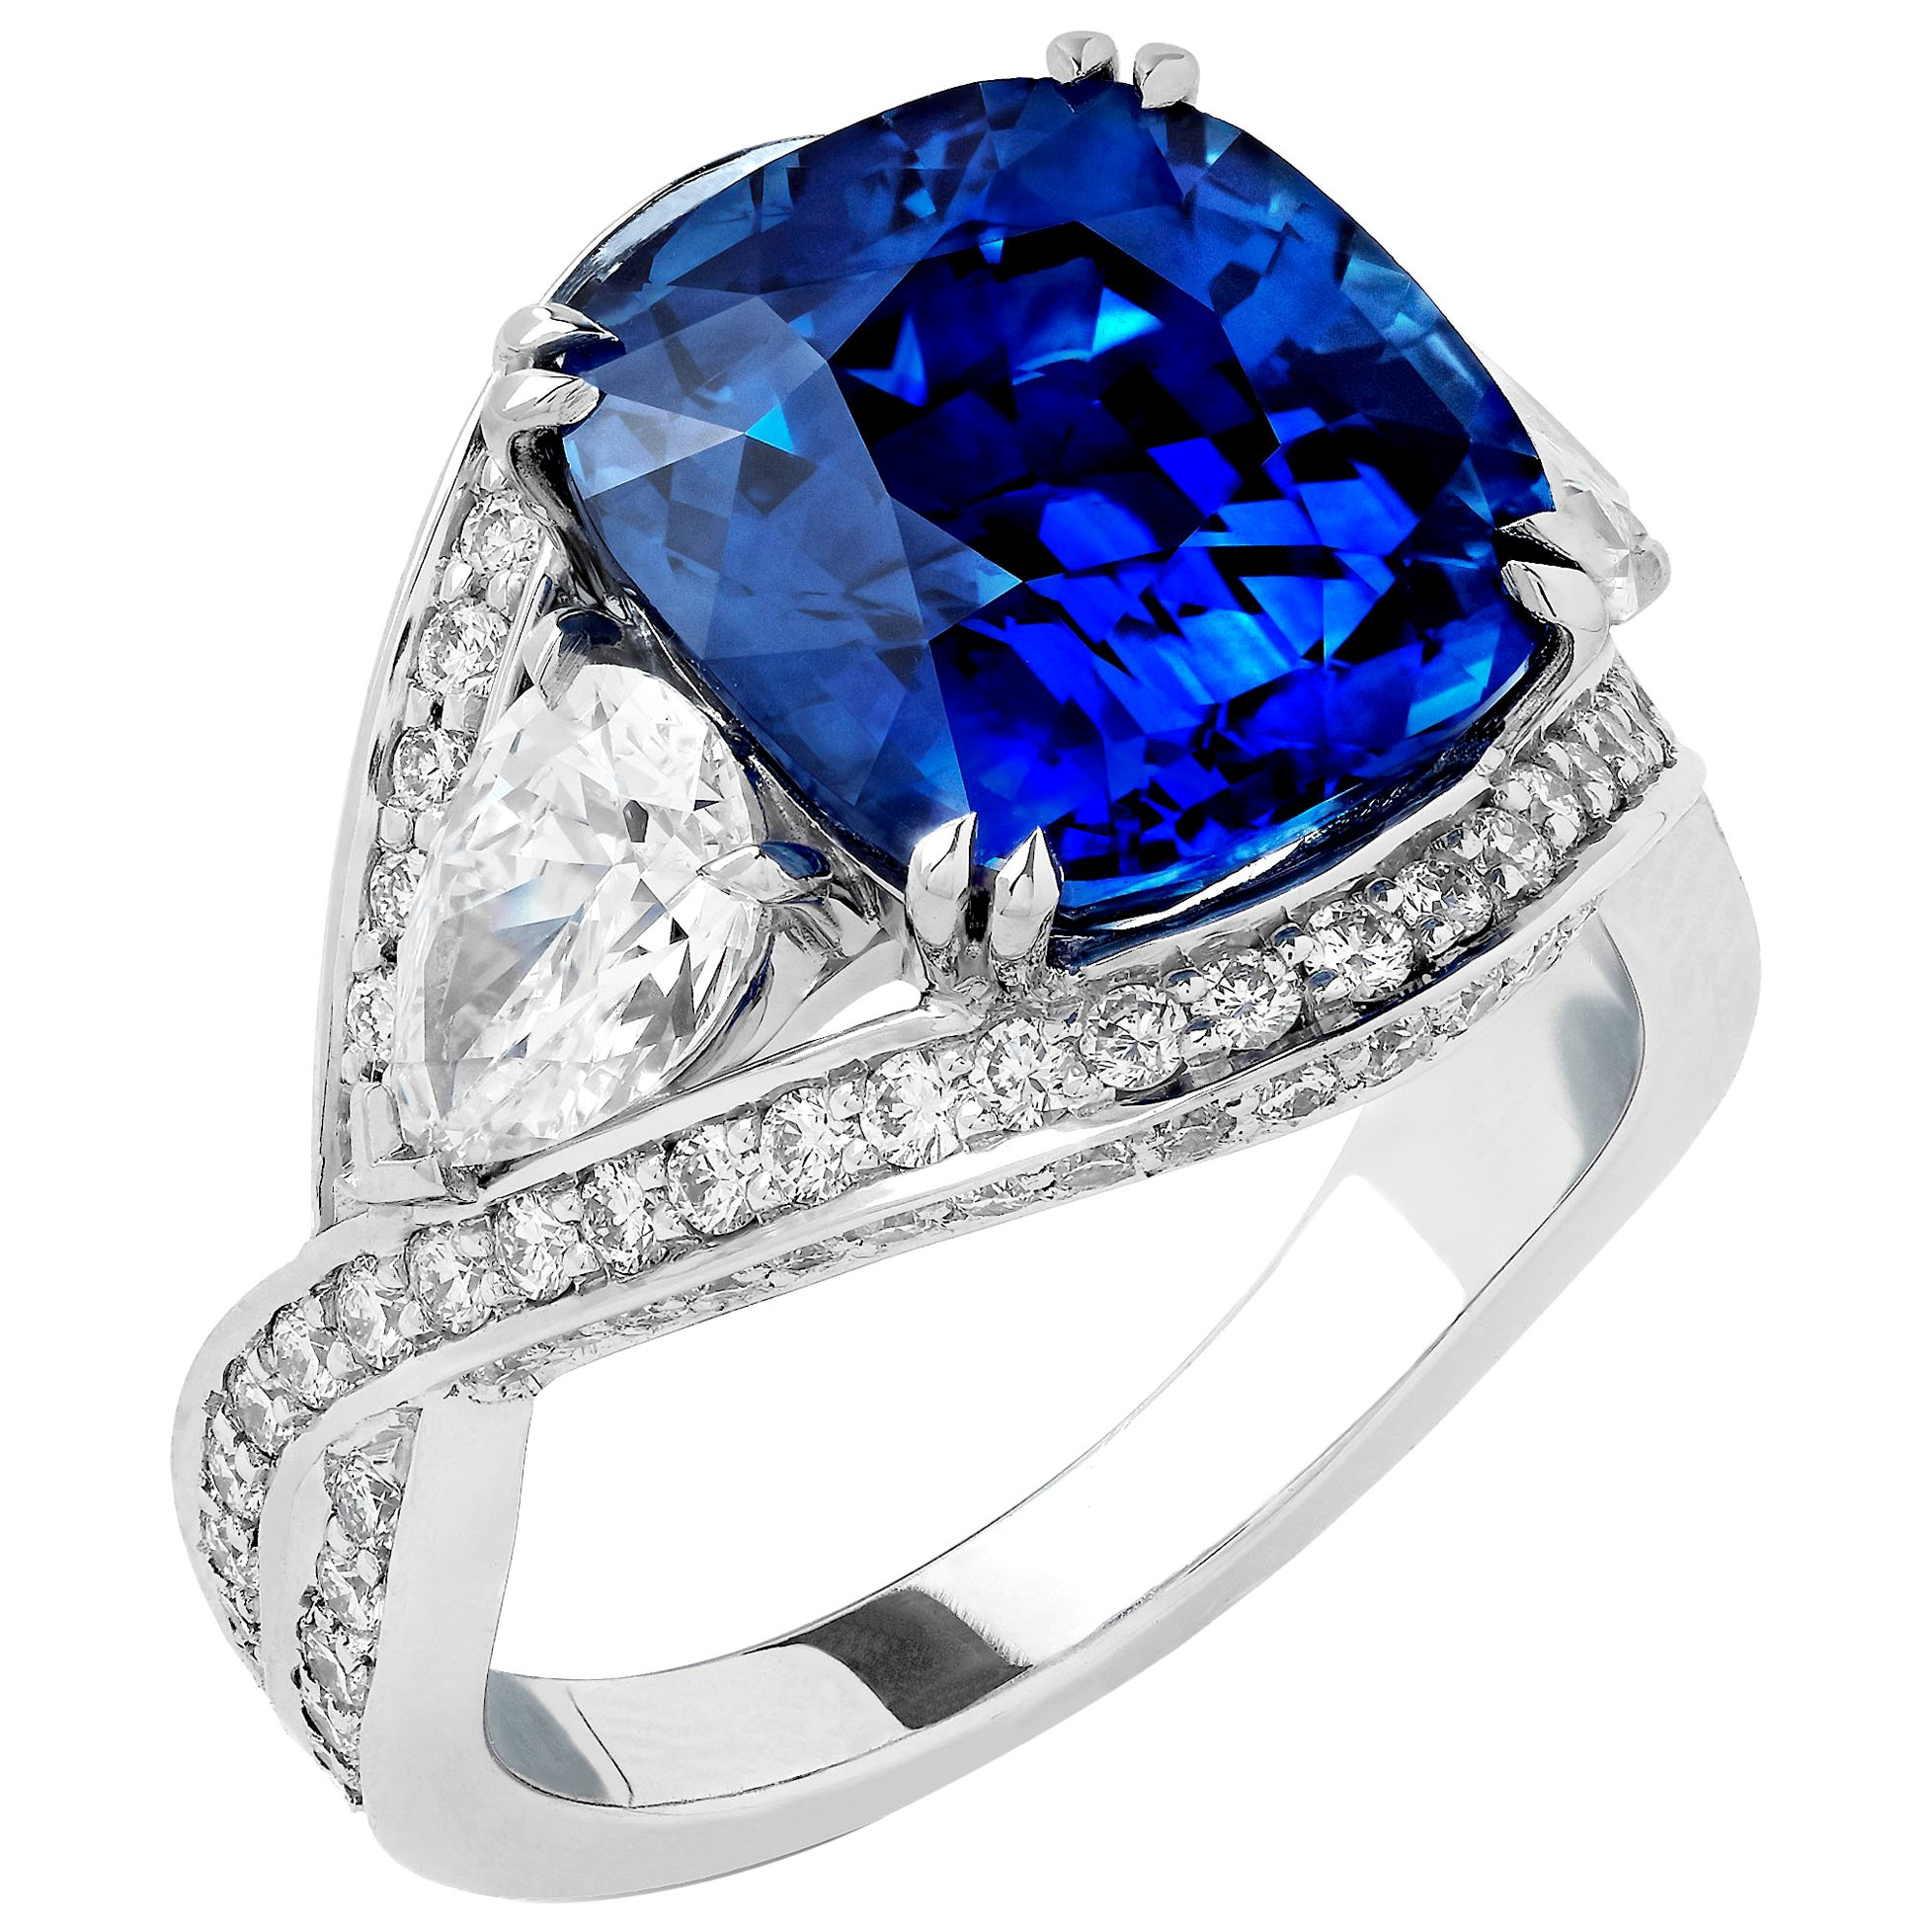 Garrard 18 Karat White Gold GRS Blue Sapphire 8.85ct Cushion Cut Cocktail Ring